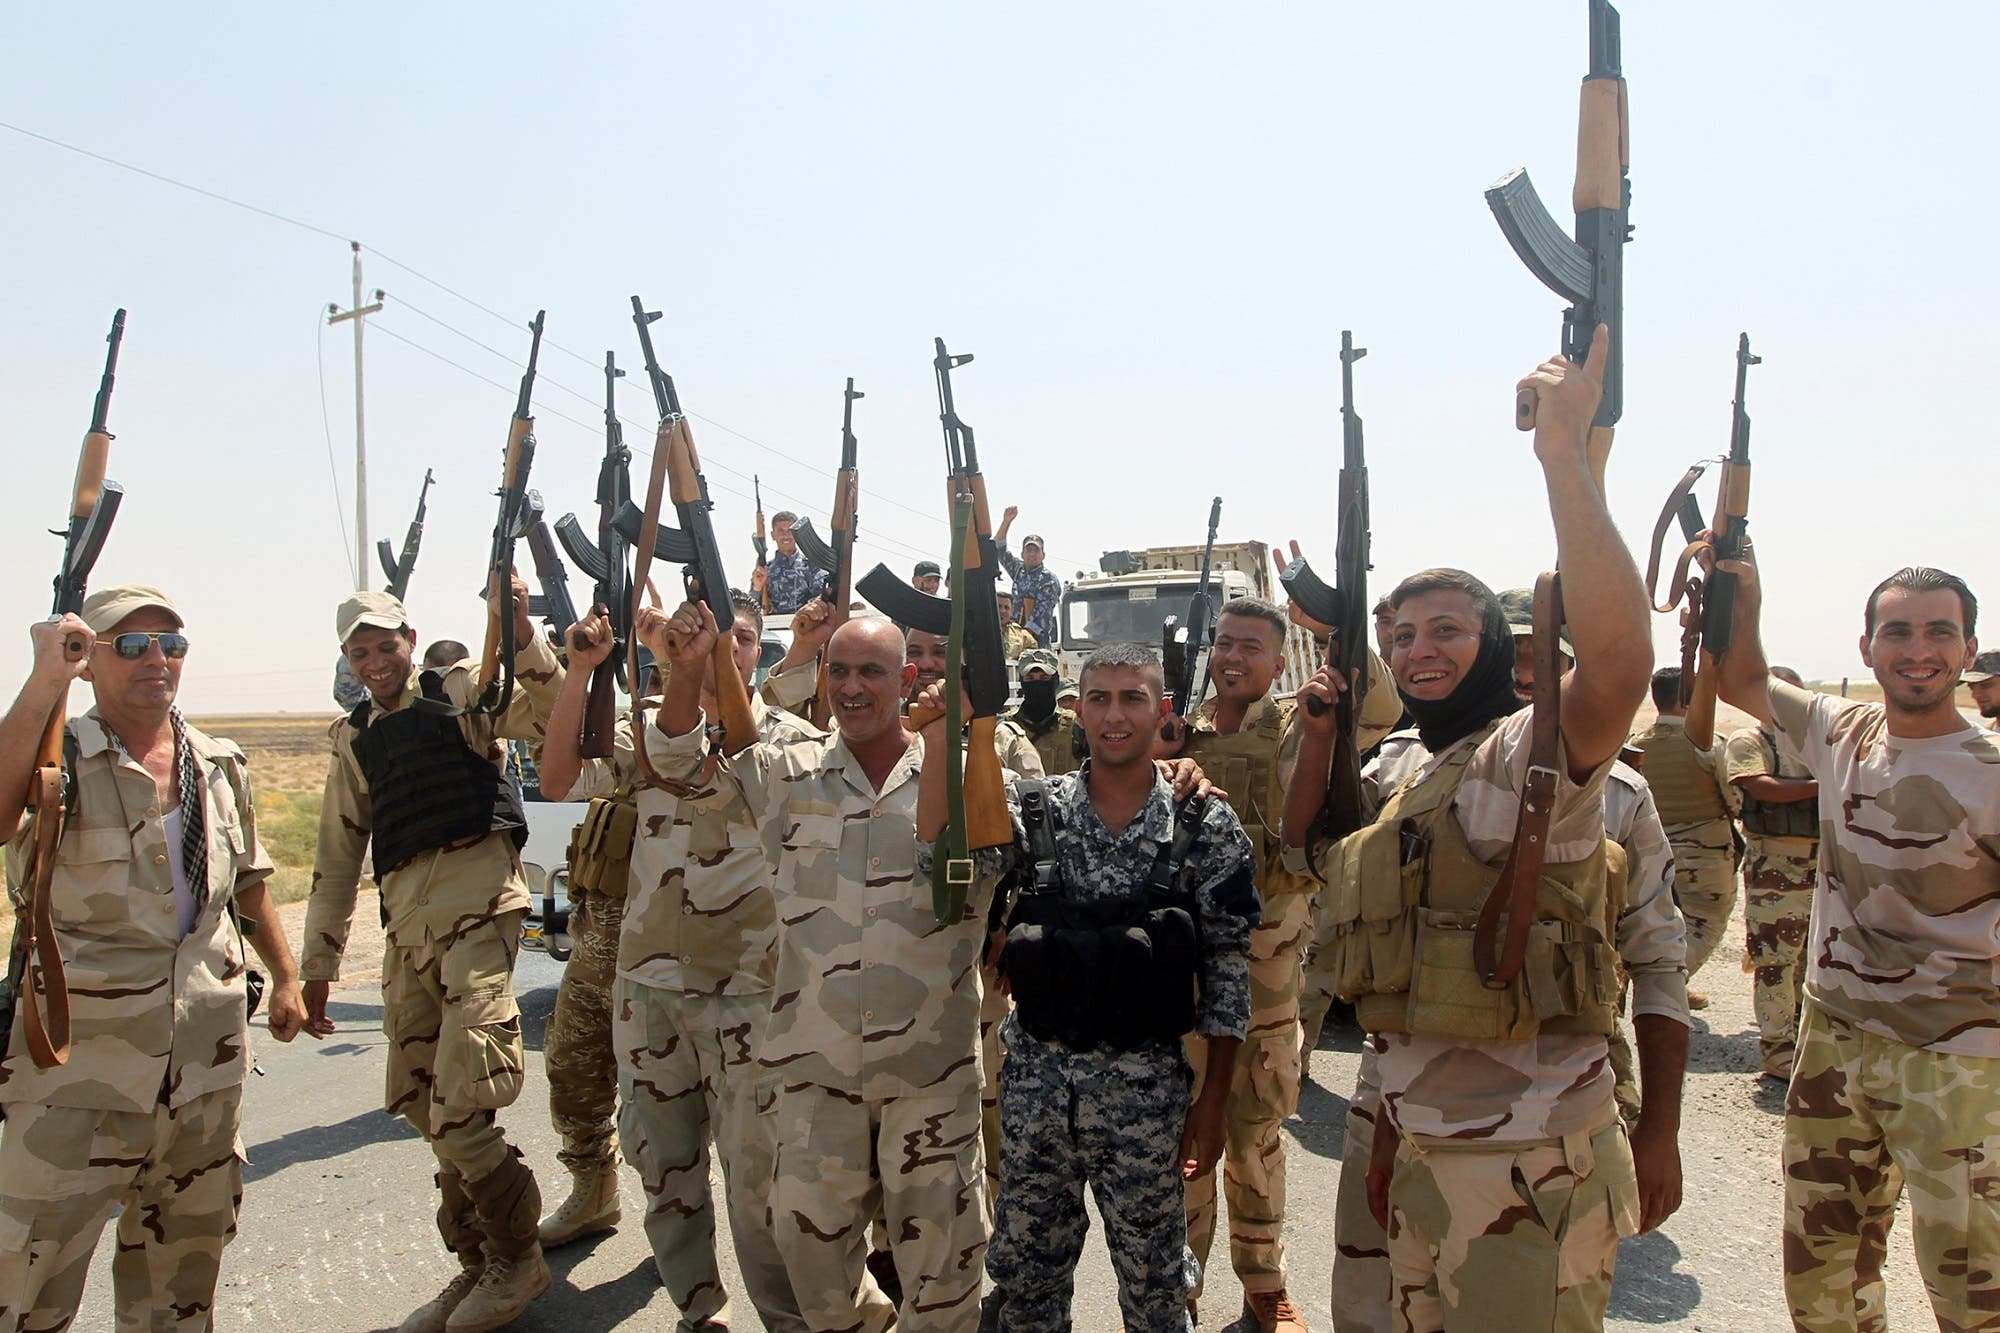 Iraqi members of Badr Organization raise up their weapons as they celebrate on September 1, 2014 near Diyala province after Iraqi forces broke through to the Shiite town of Amerli. (AFP)